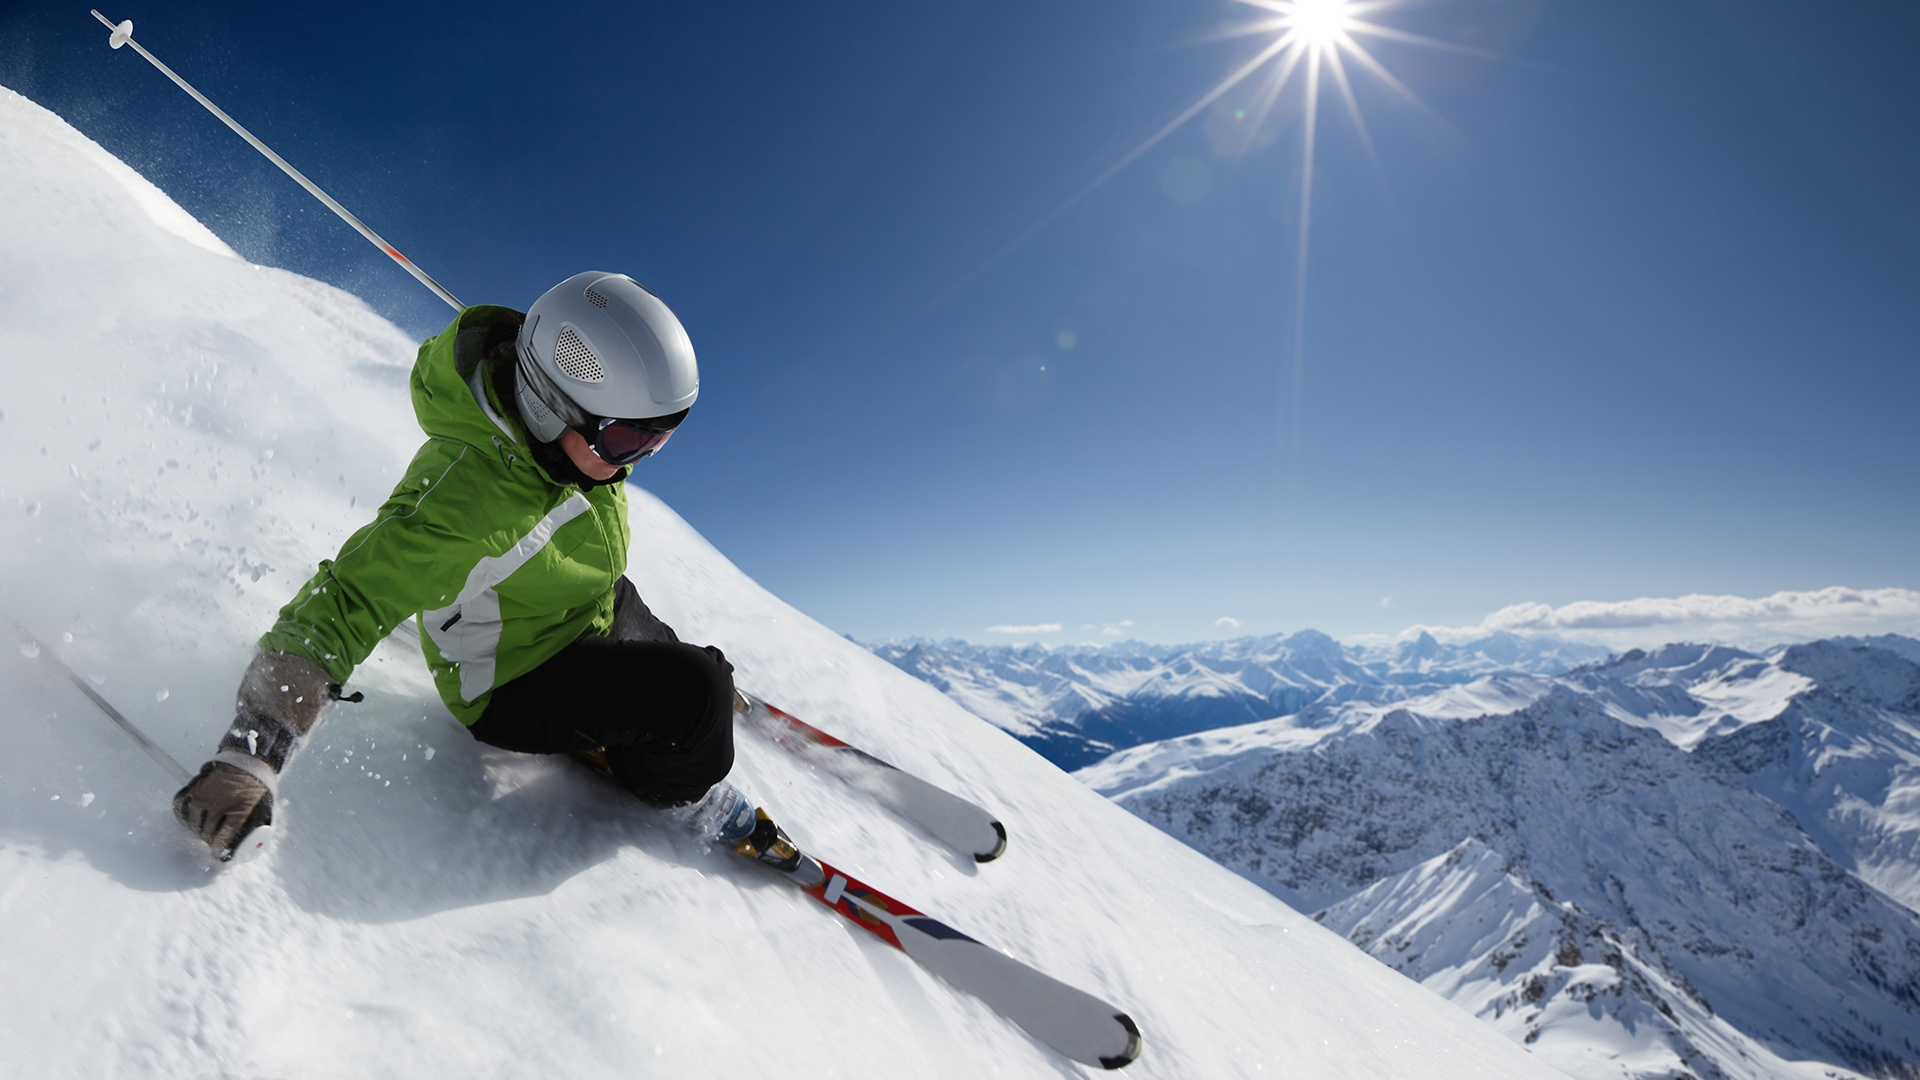 Sports   Skiing Ski Mountain Snow Winter Wallpaper 1920x1080